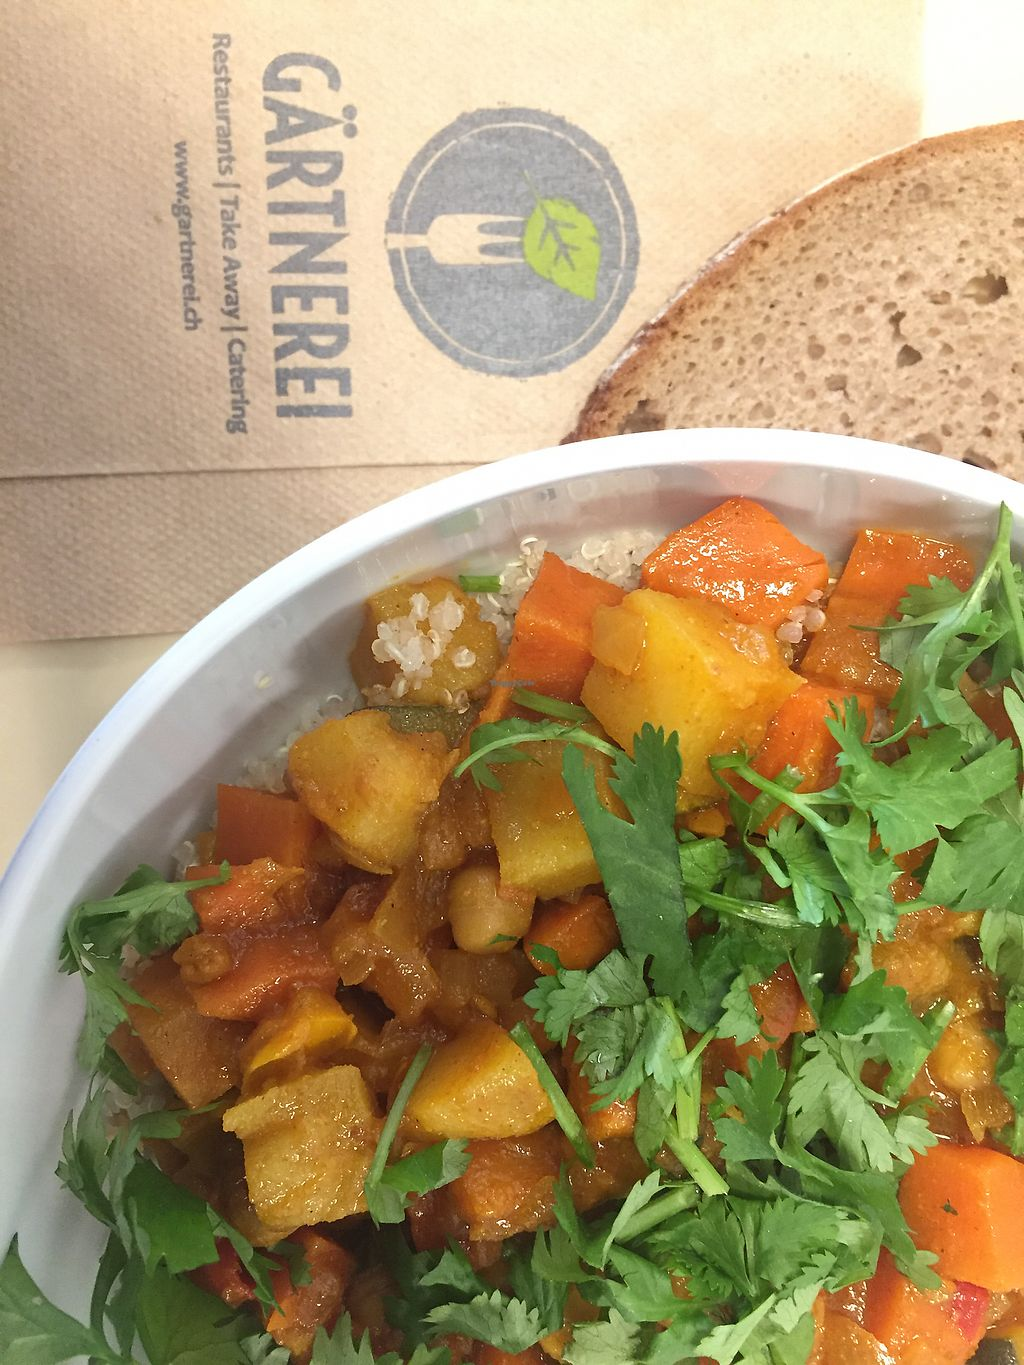 """Photo of Gartnerei - Stockerstrasse  by <a href=""""/members/profile/useradventure"""">useradventure</a> <br/>Delicious vegan veggie bowl! <br/> May 17, 2018  - <a href='/contact/abuse/image/39552/400970'>Report</a>"""